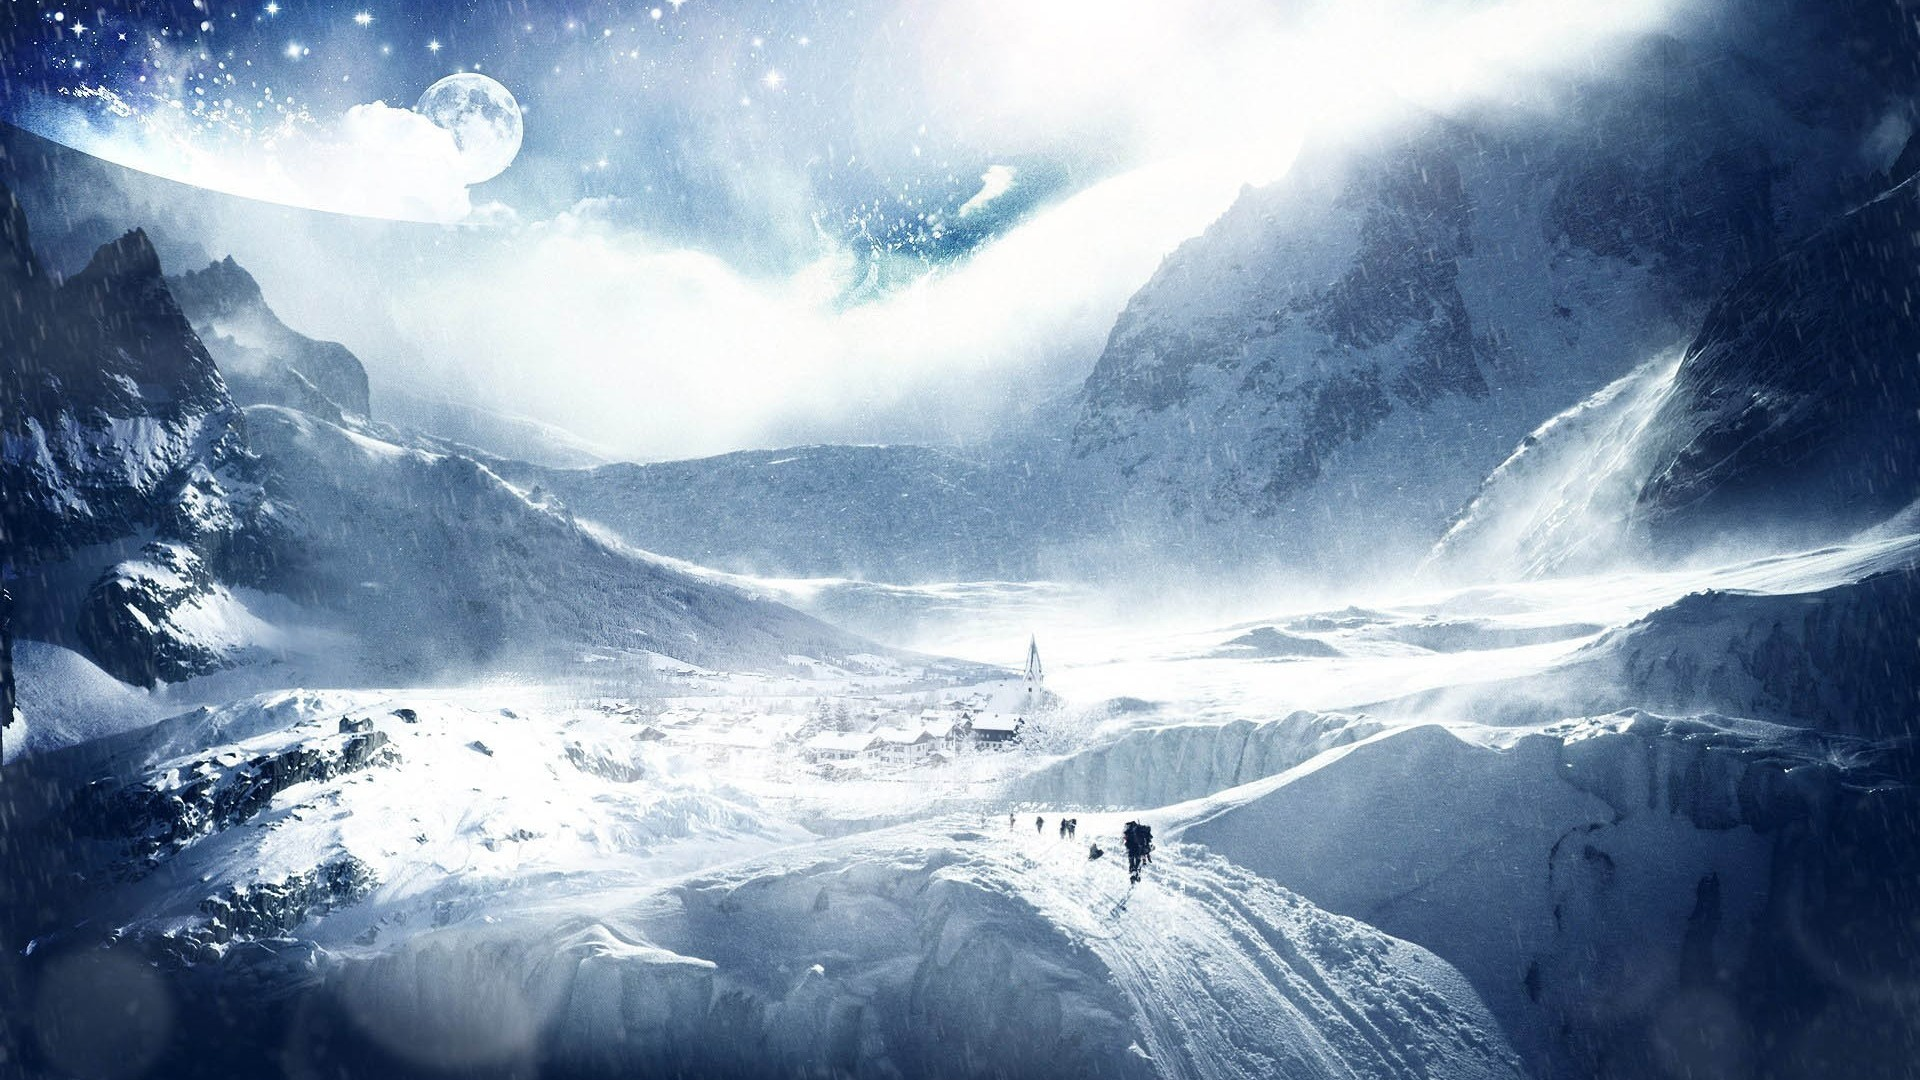 Wallpaper trees, planet, earth, sky, stars, skiers, research